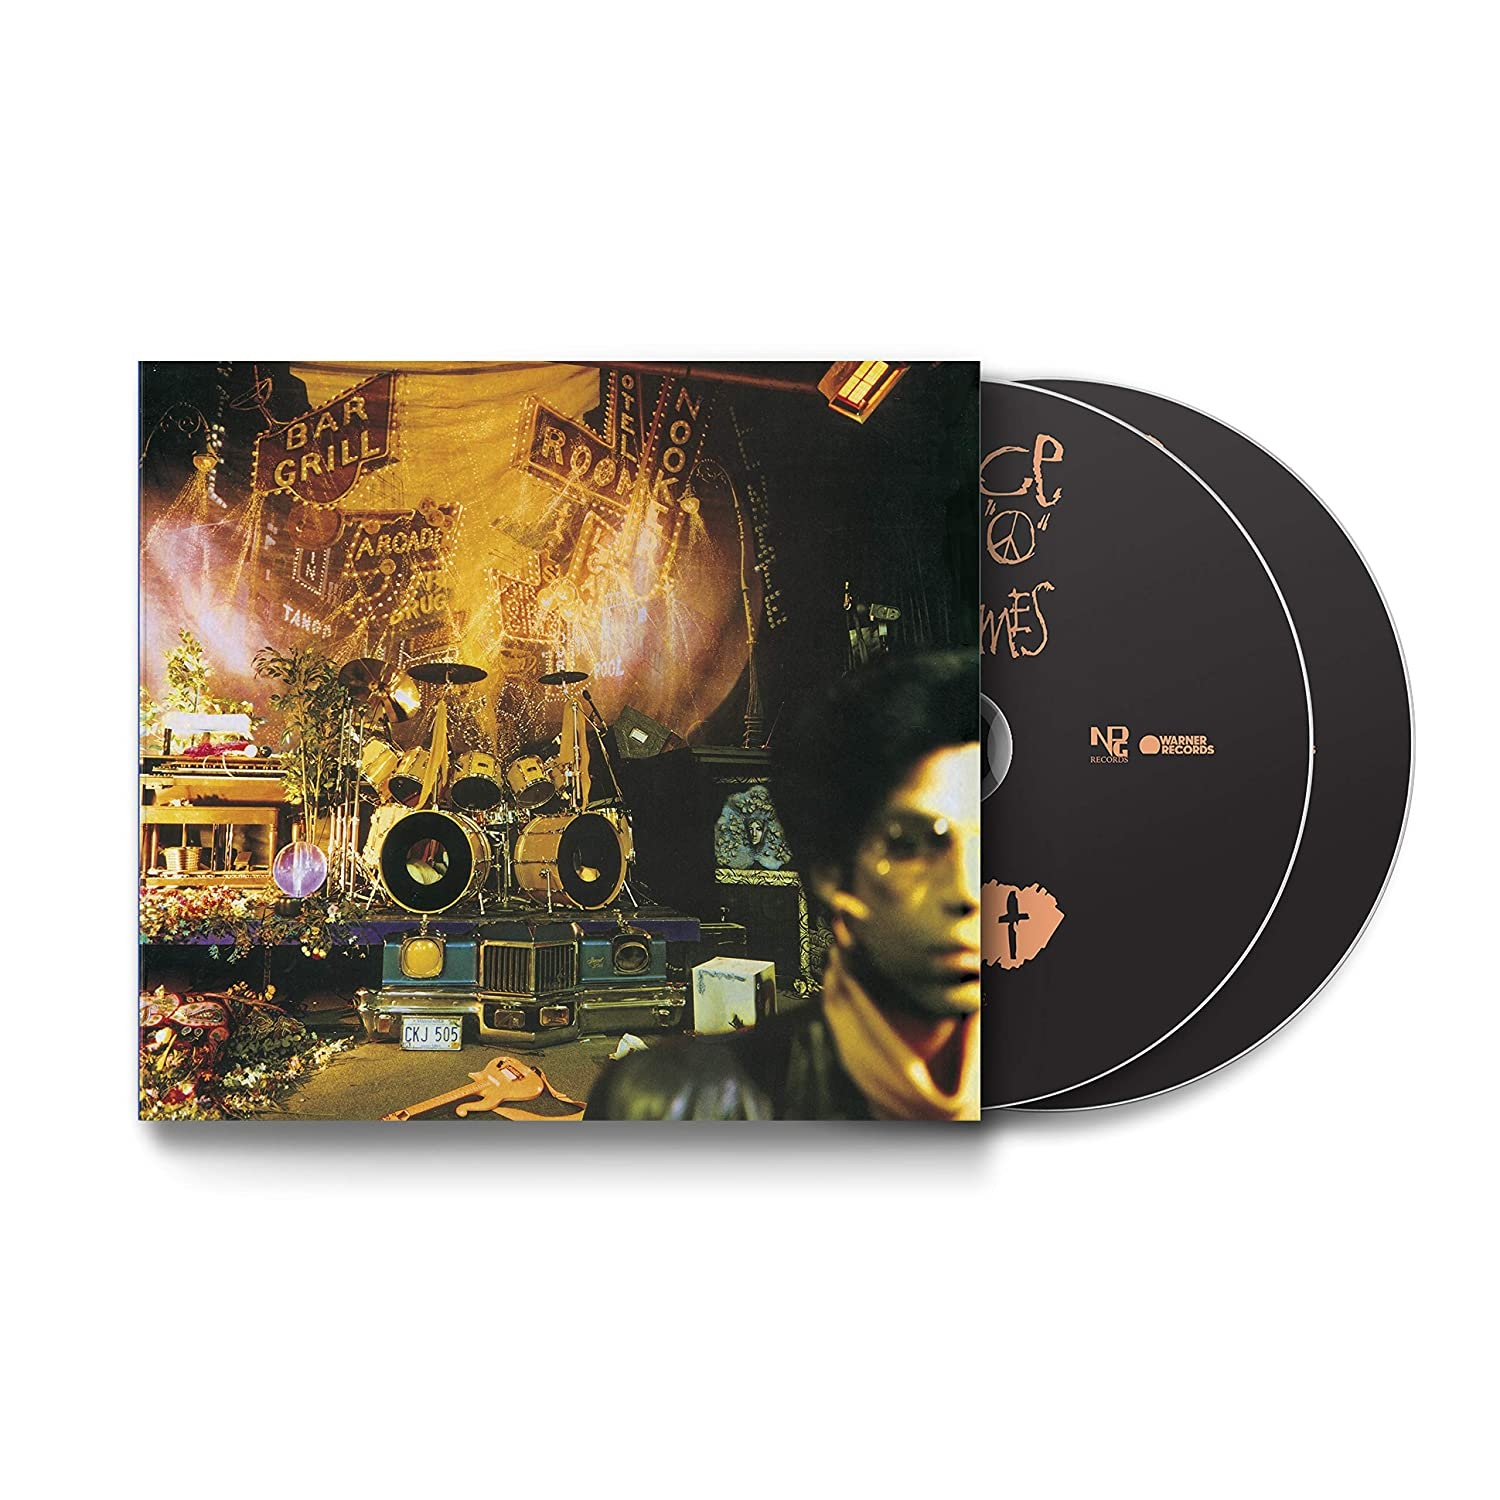 Sign O' the Times (2020 Reissue) - Prince - Musik - WARNER RECORDS - 0603497846535 - September 25, 2020